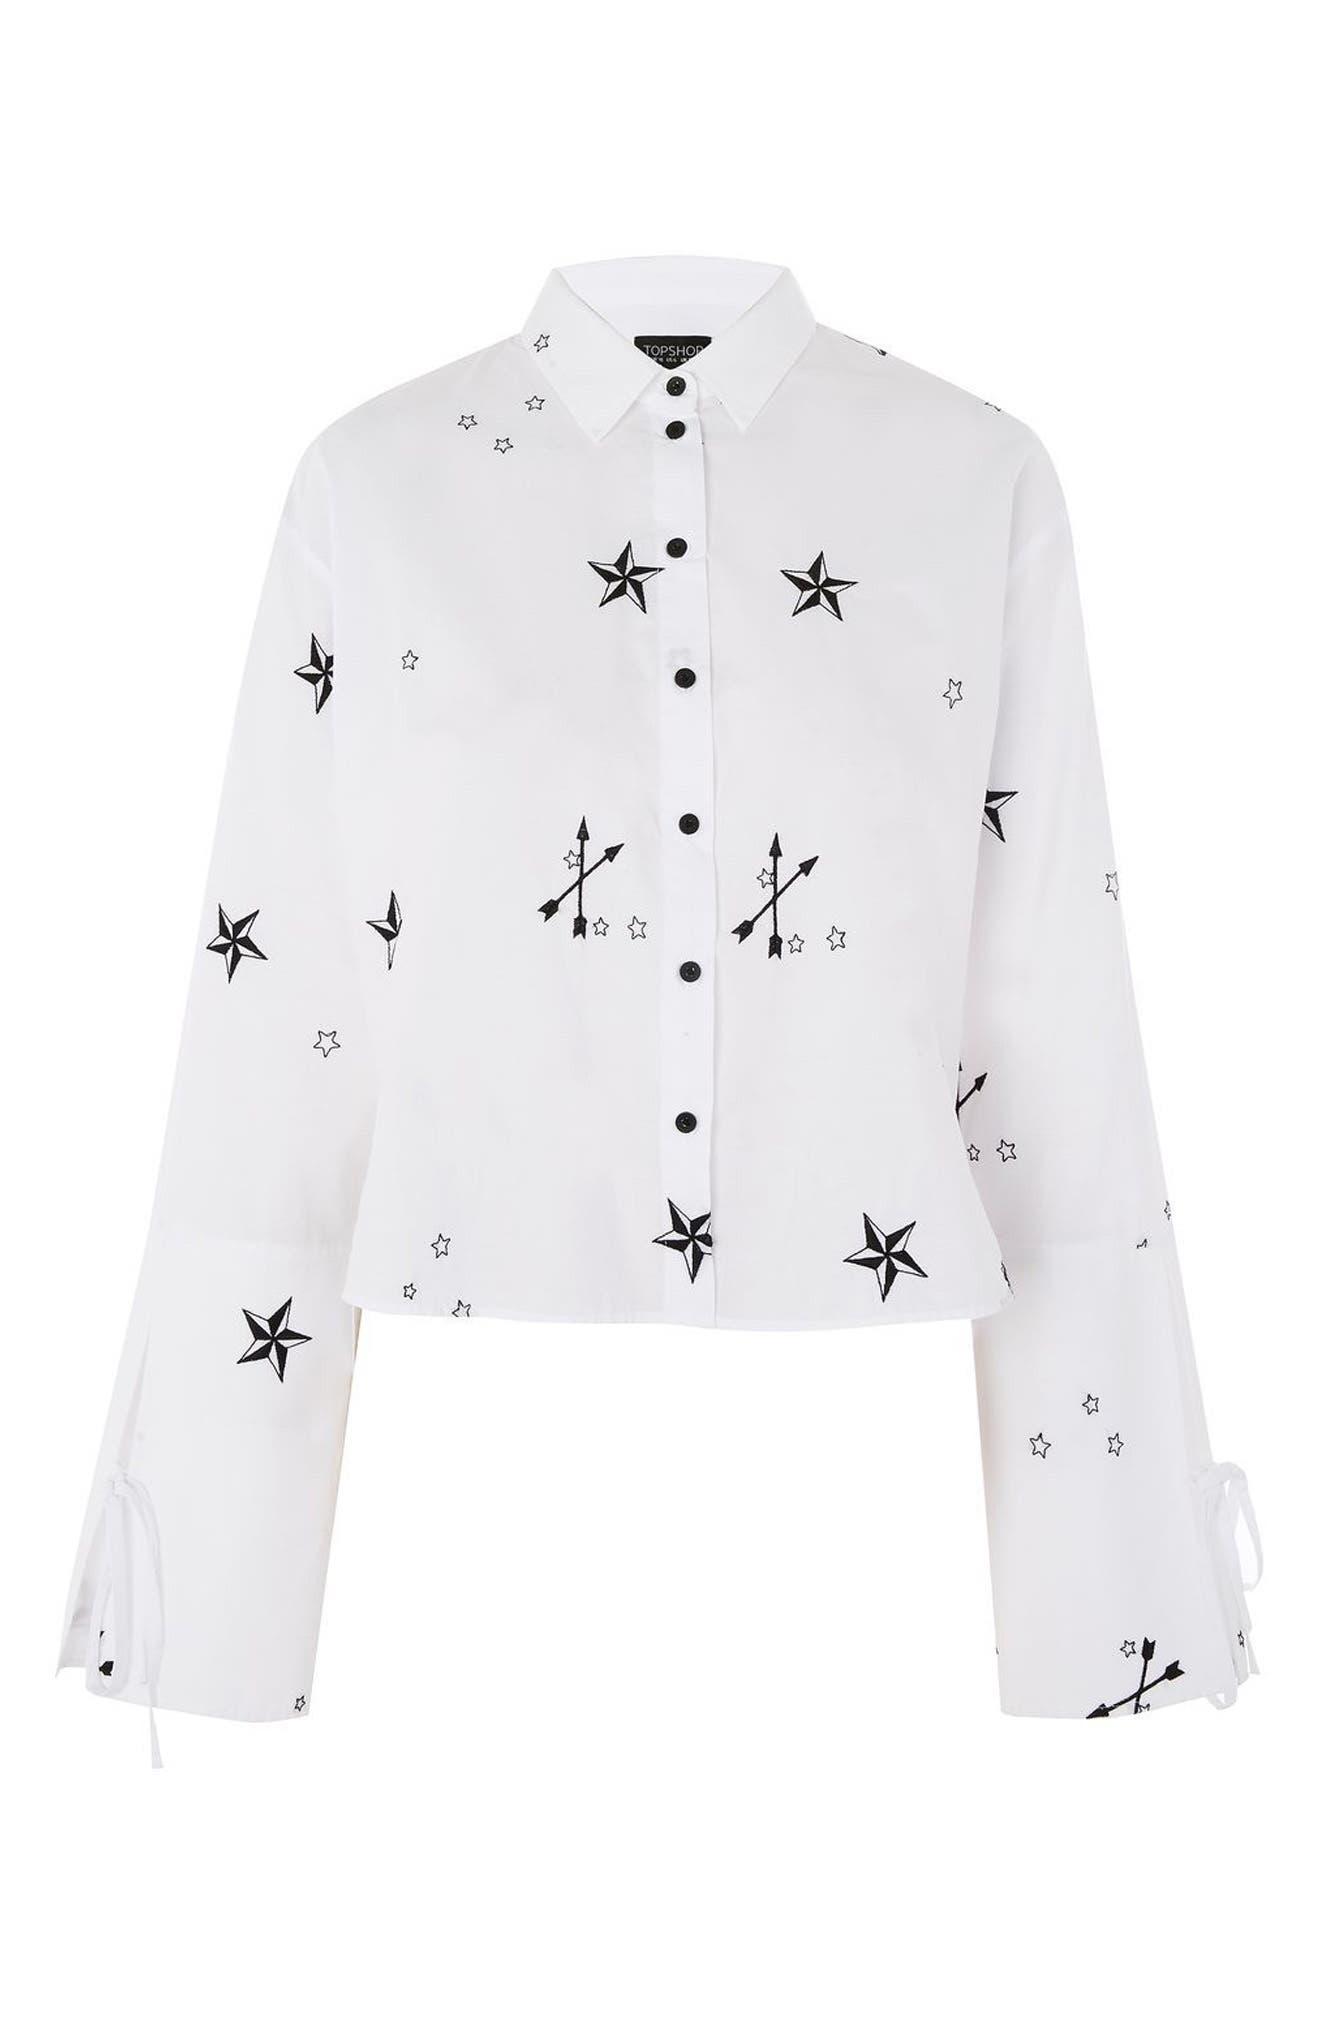 TOPSHOP,                             Star Embroidered Shirt,                             Alternate thumbnail 3, color,                             100